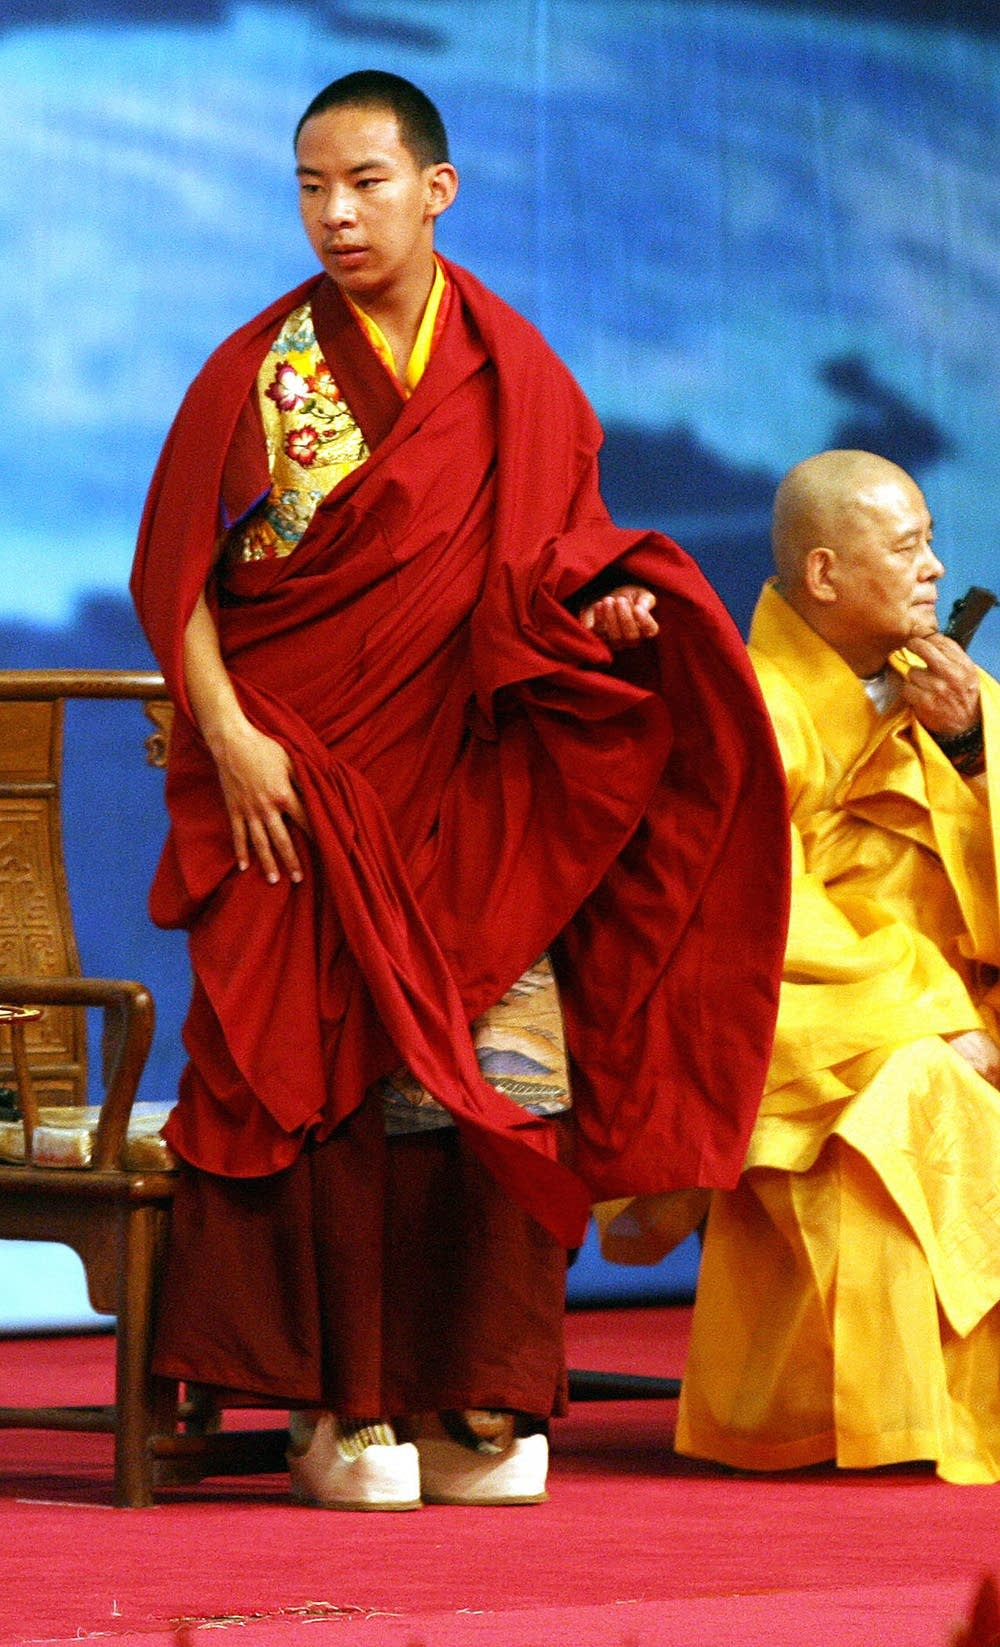 The Panchen Lama